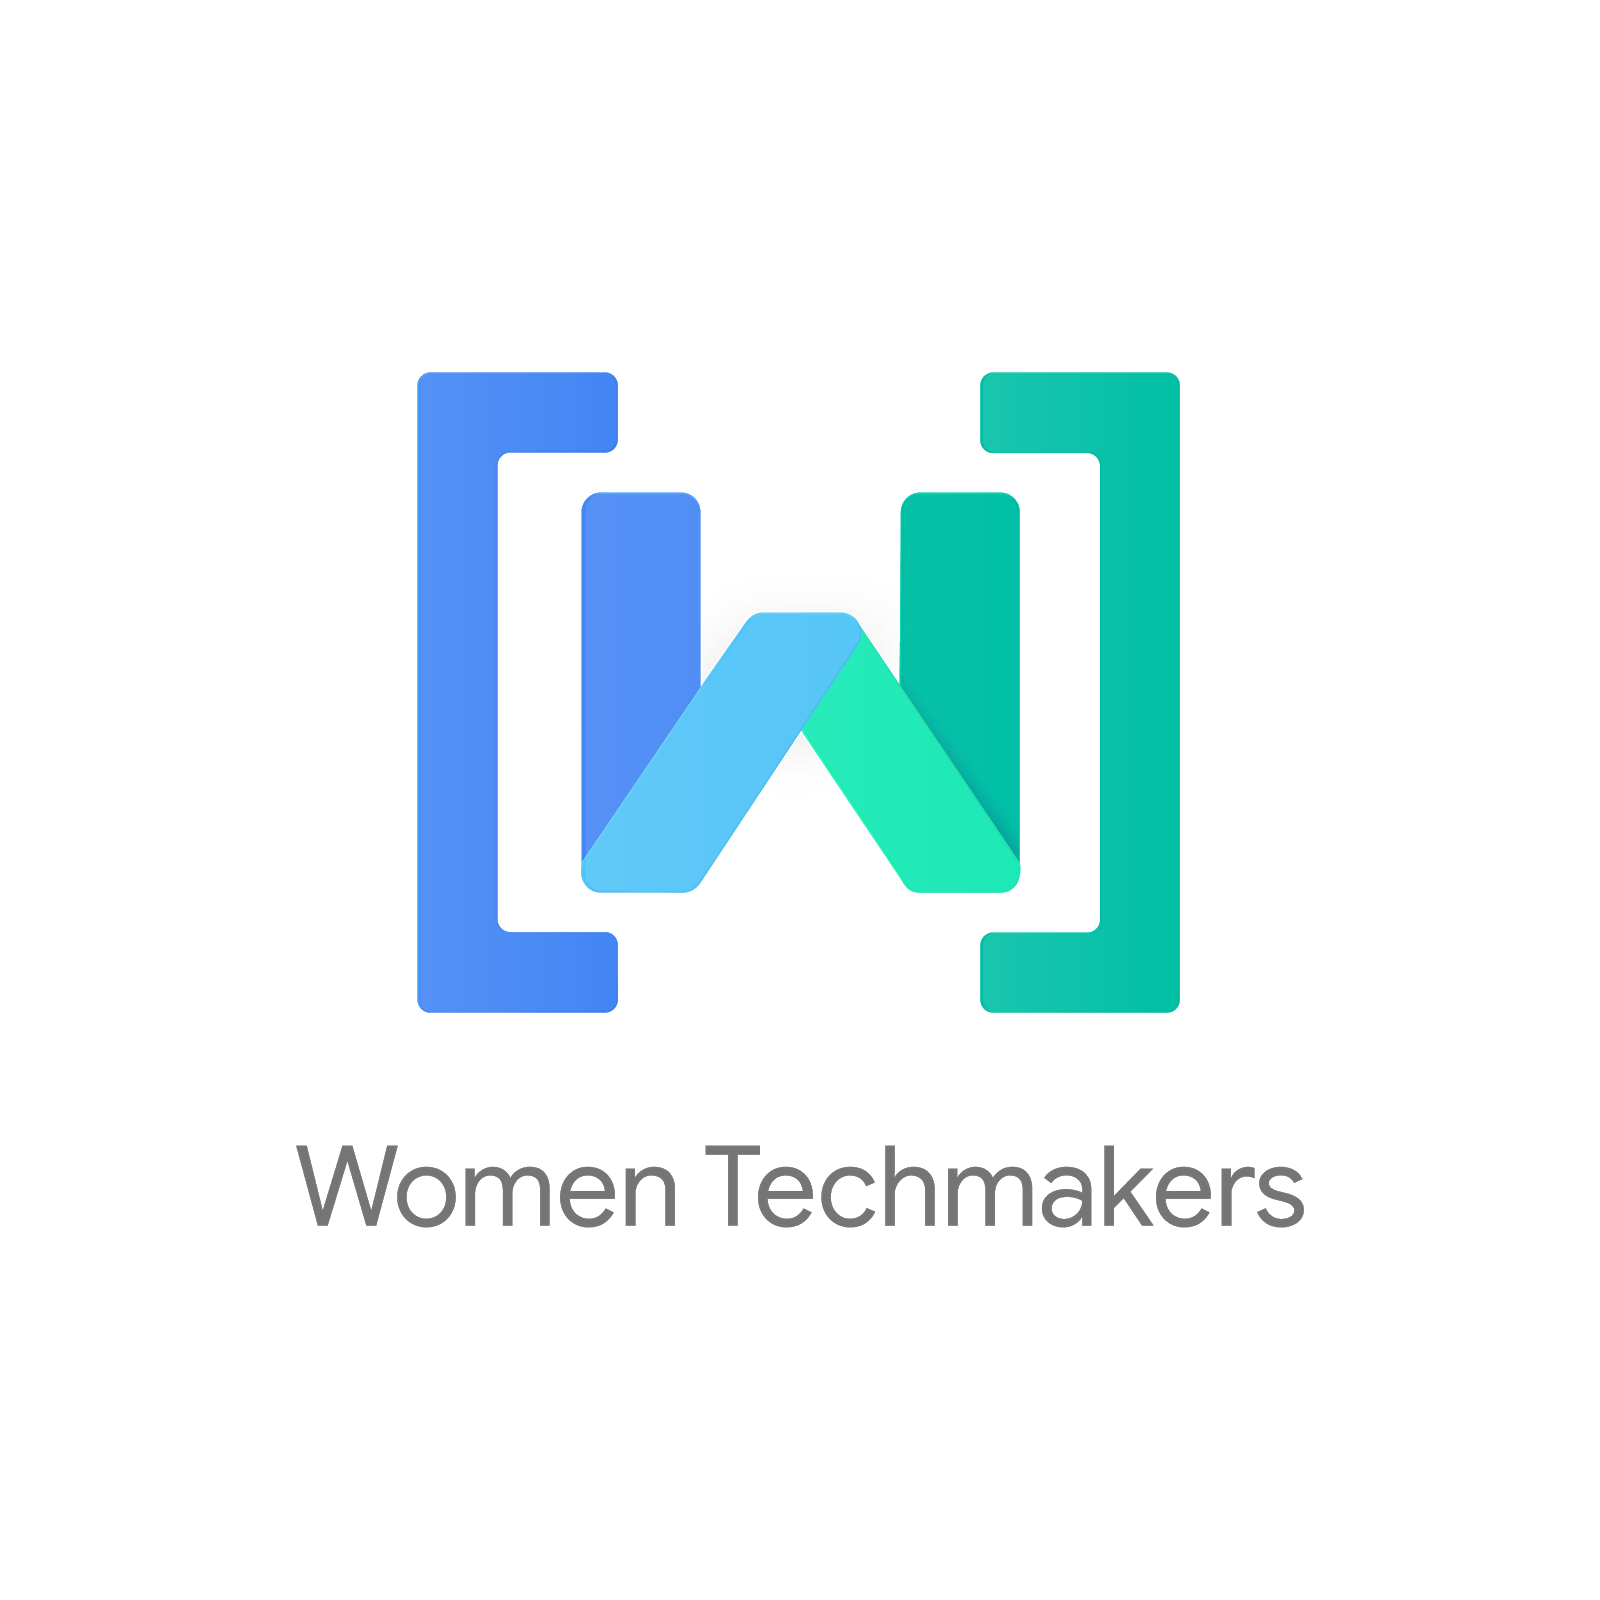 Ambassador for the WomenTechMakersProgram